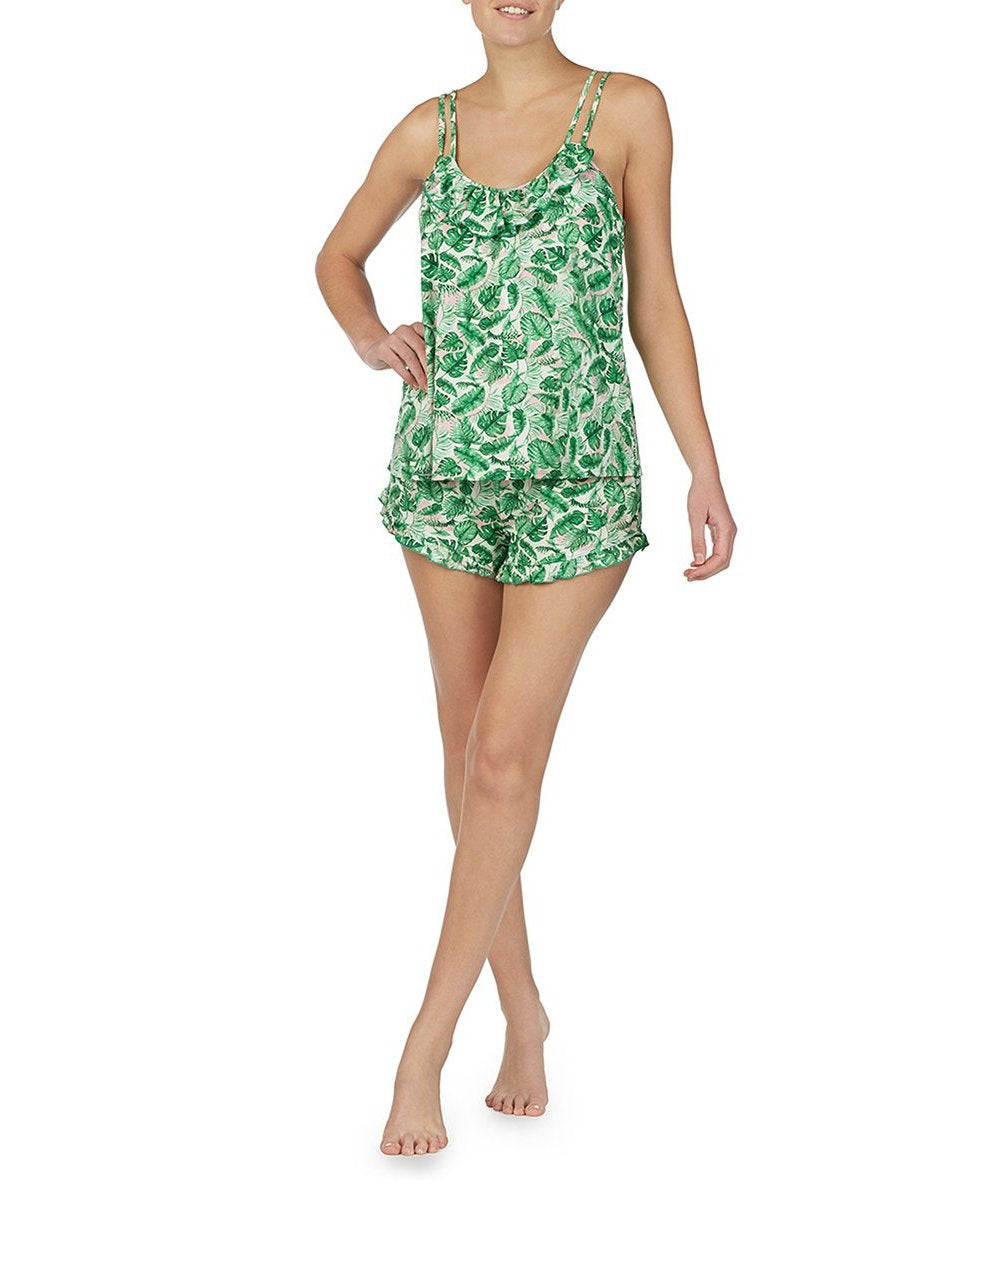 COPACABANA SLINKY SHORT SET GREEN - APPAREL - Betsey Johnson